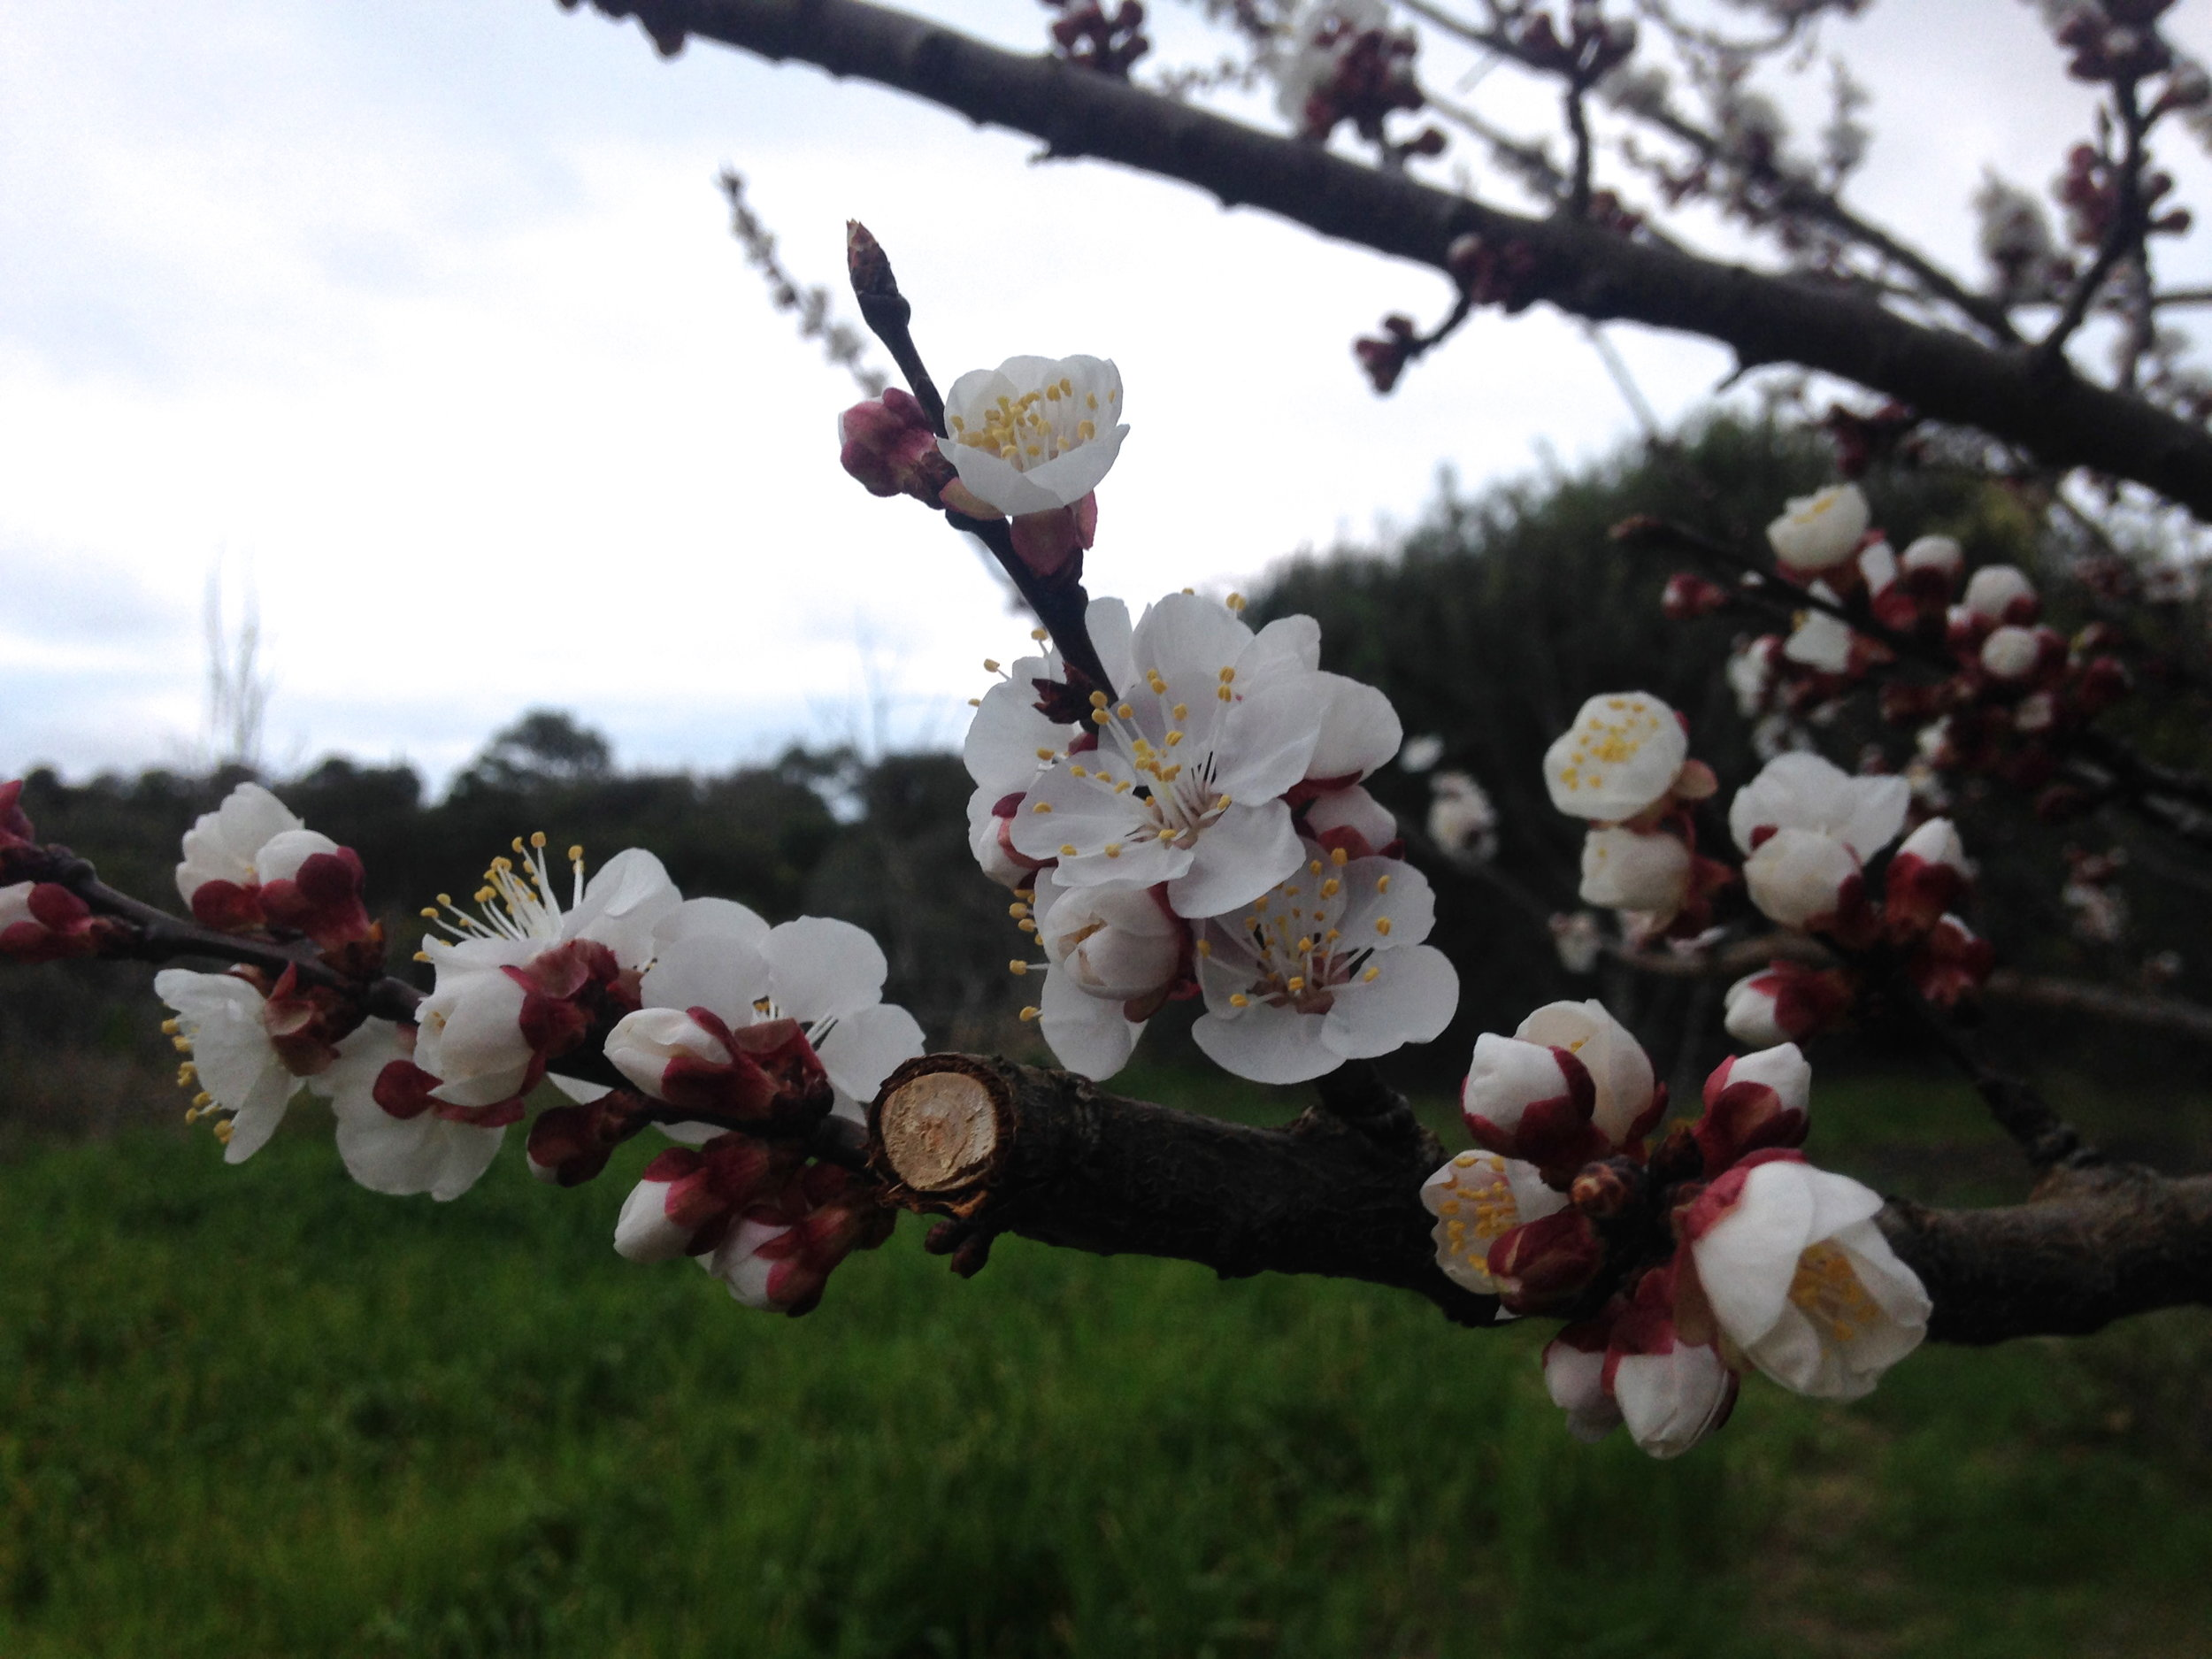 Blooming Apricot!